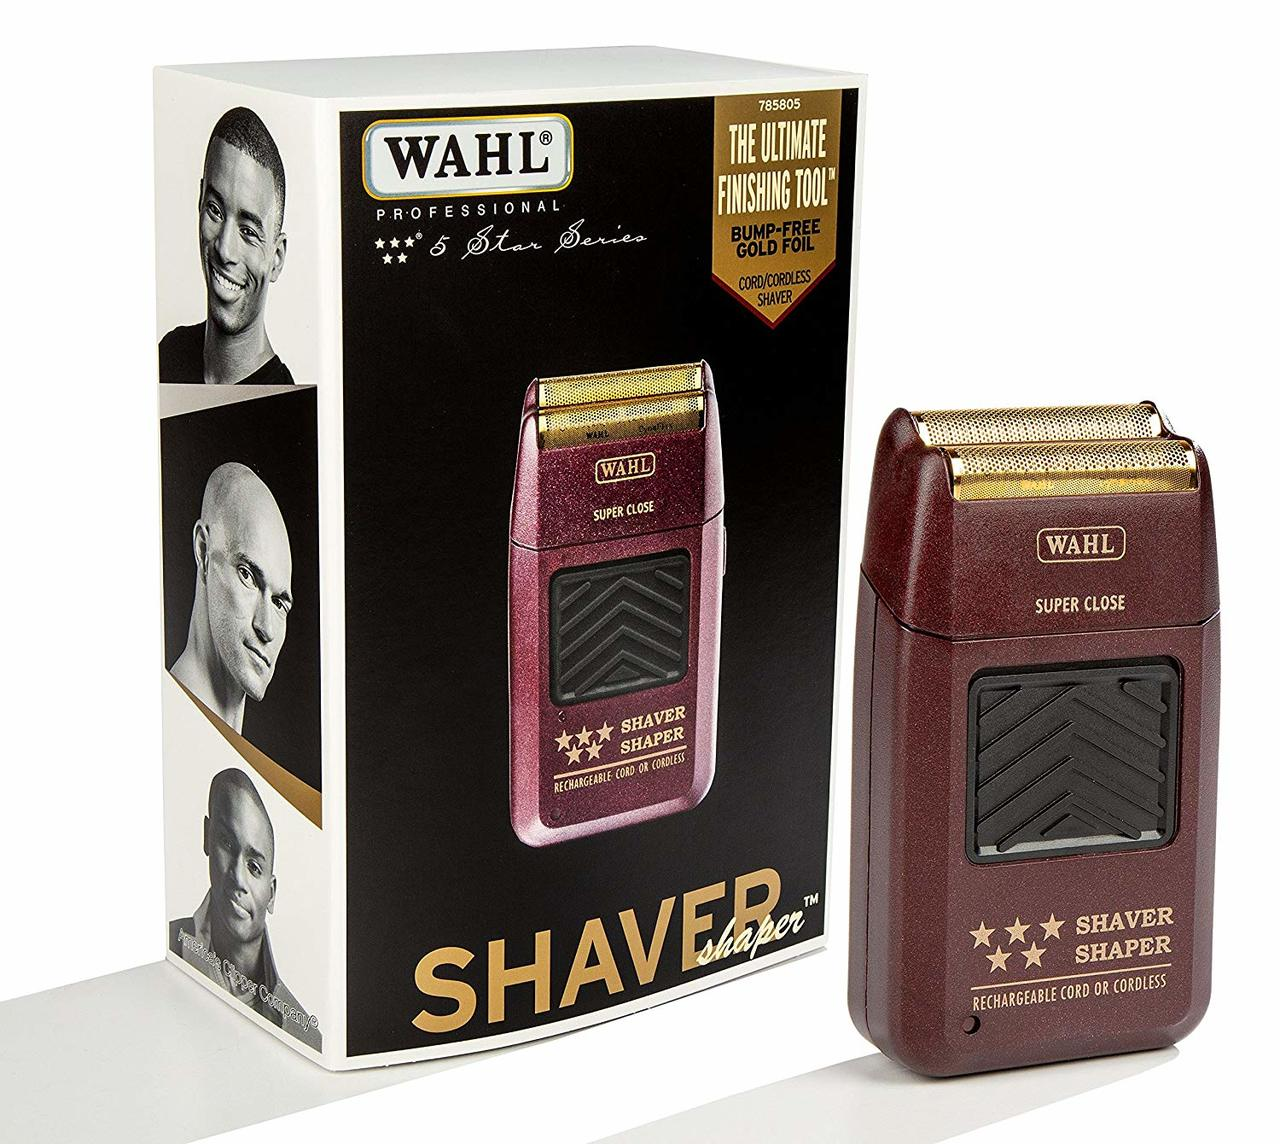 WAHL 5-star shaver shaper cord or cordless bump free shaver